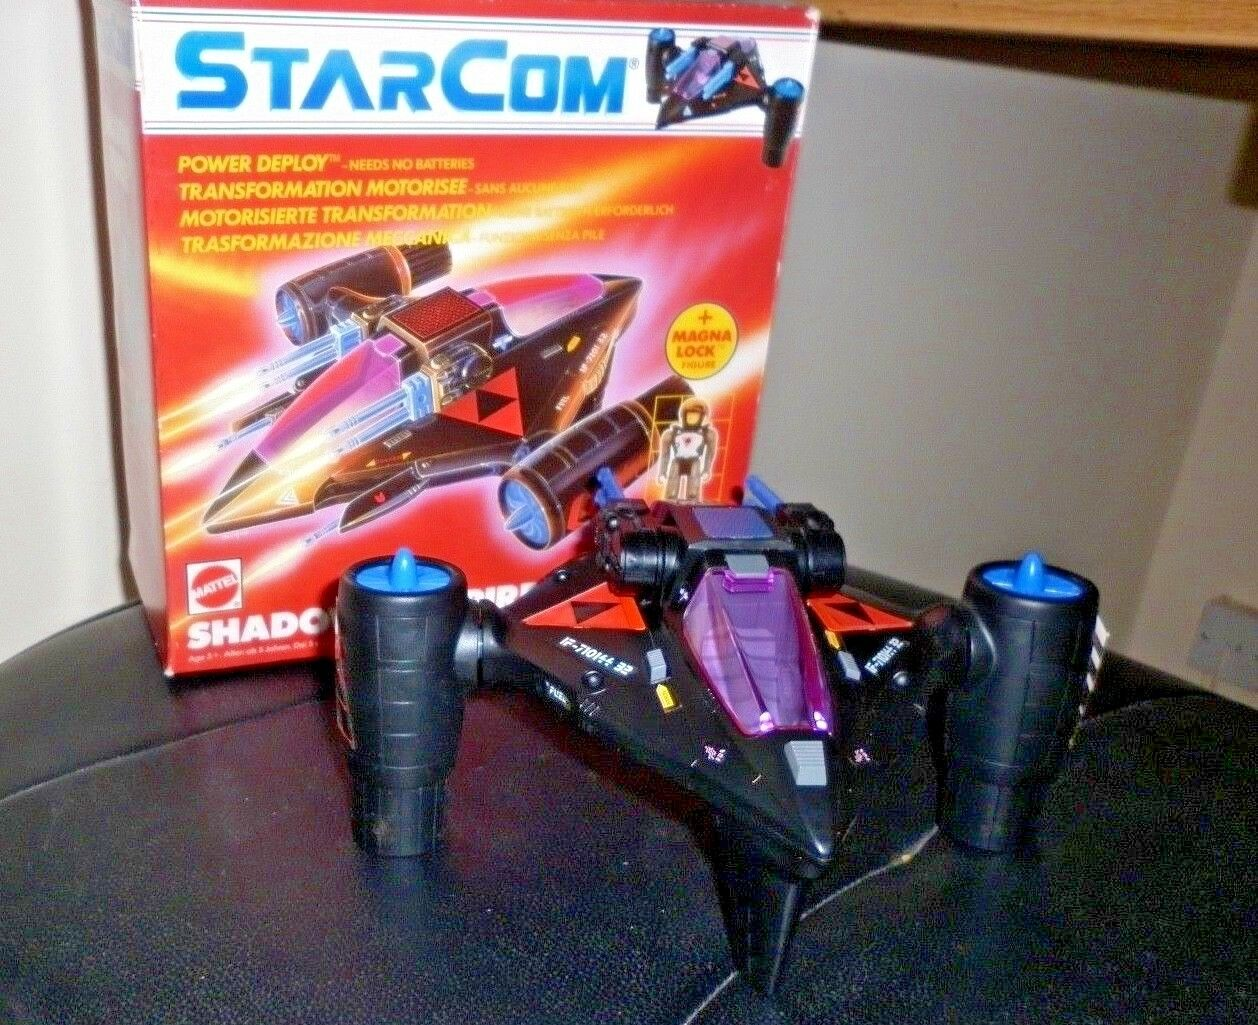 STARCOM SHADOW VAMPIRE COMPLETE AND FULLY FUNCTIONING WITH 2 FIGURES 1986 COLECO